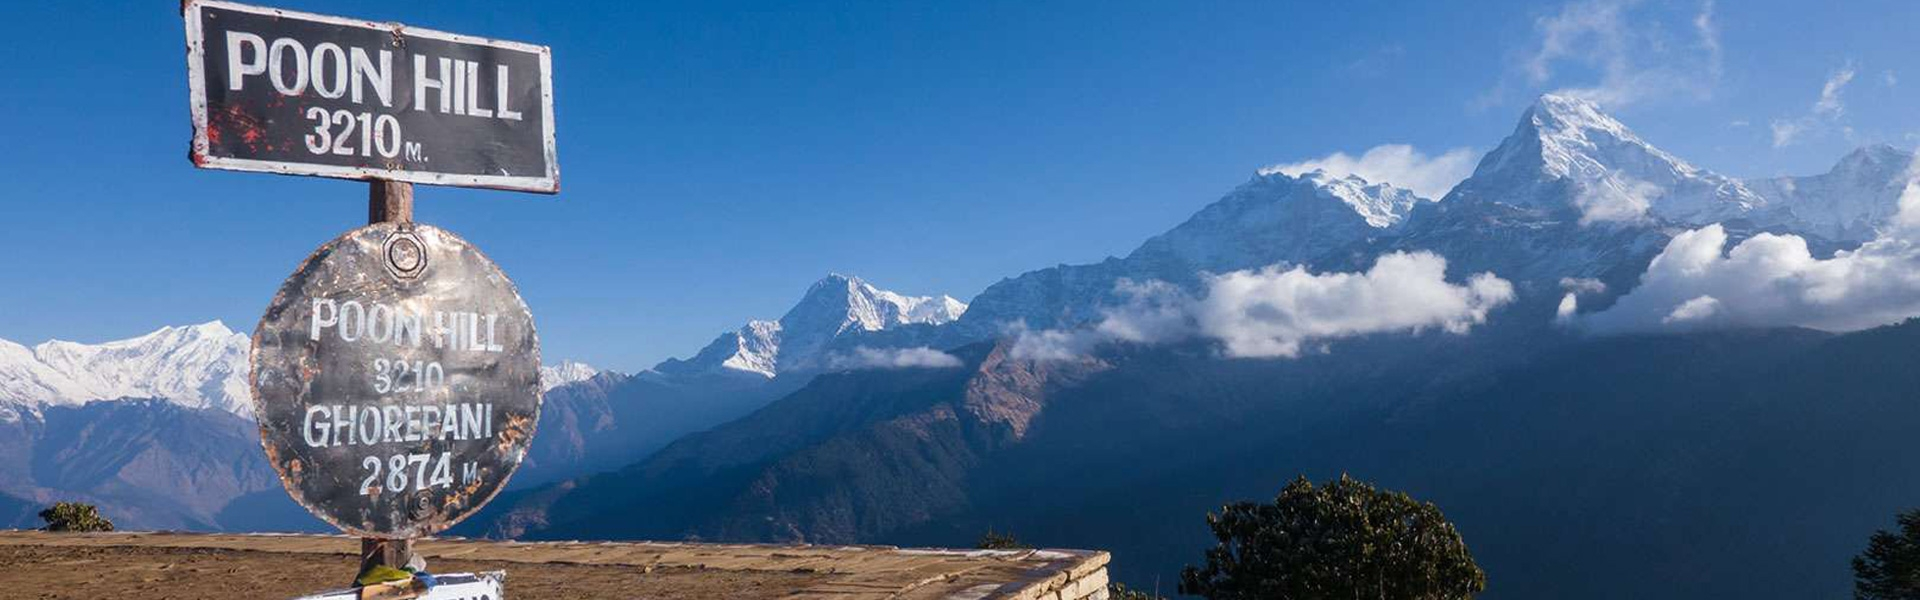 Ghorepani Poon Hill trek in May